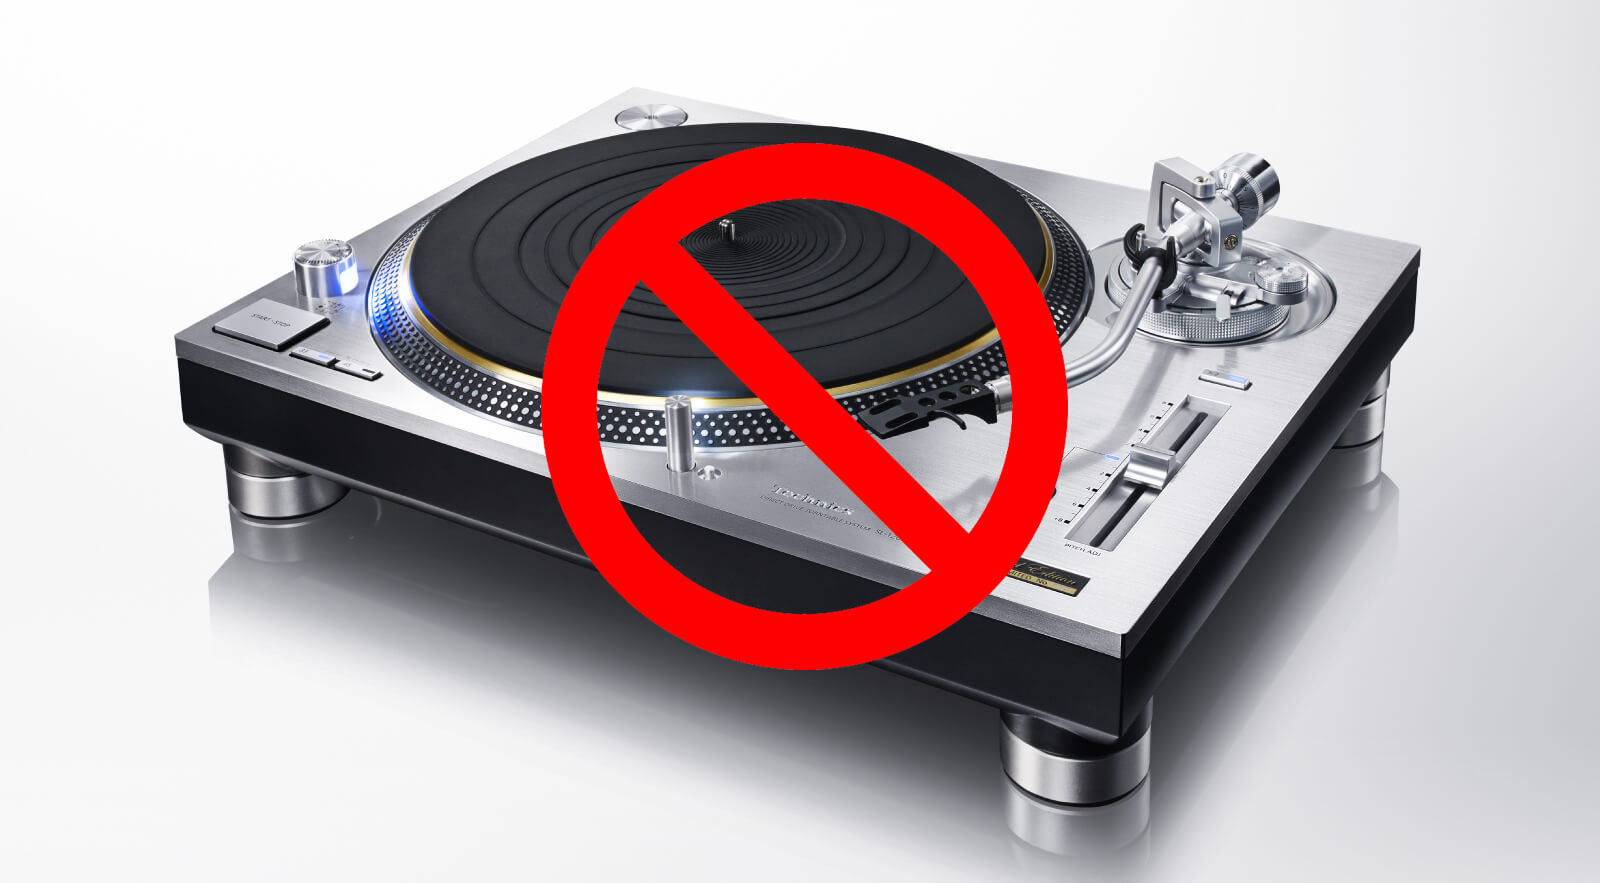 CDJs And Turntables Have Been Banned From This Underground